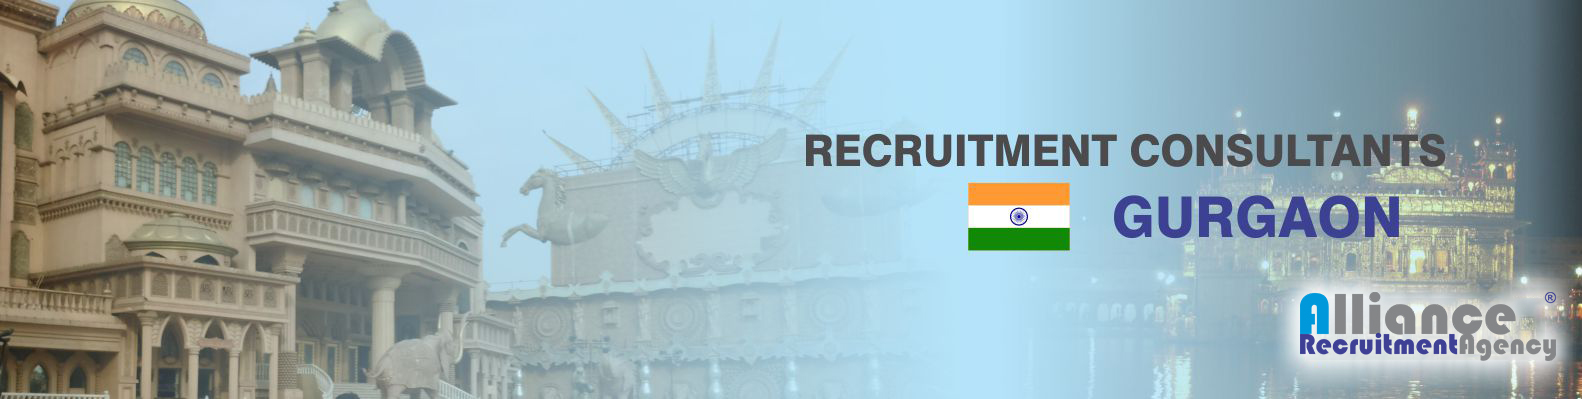 Recruitment Consultants - Best Recruitment consultants in Gurgaon